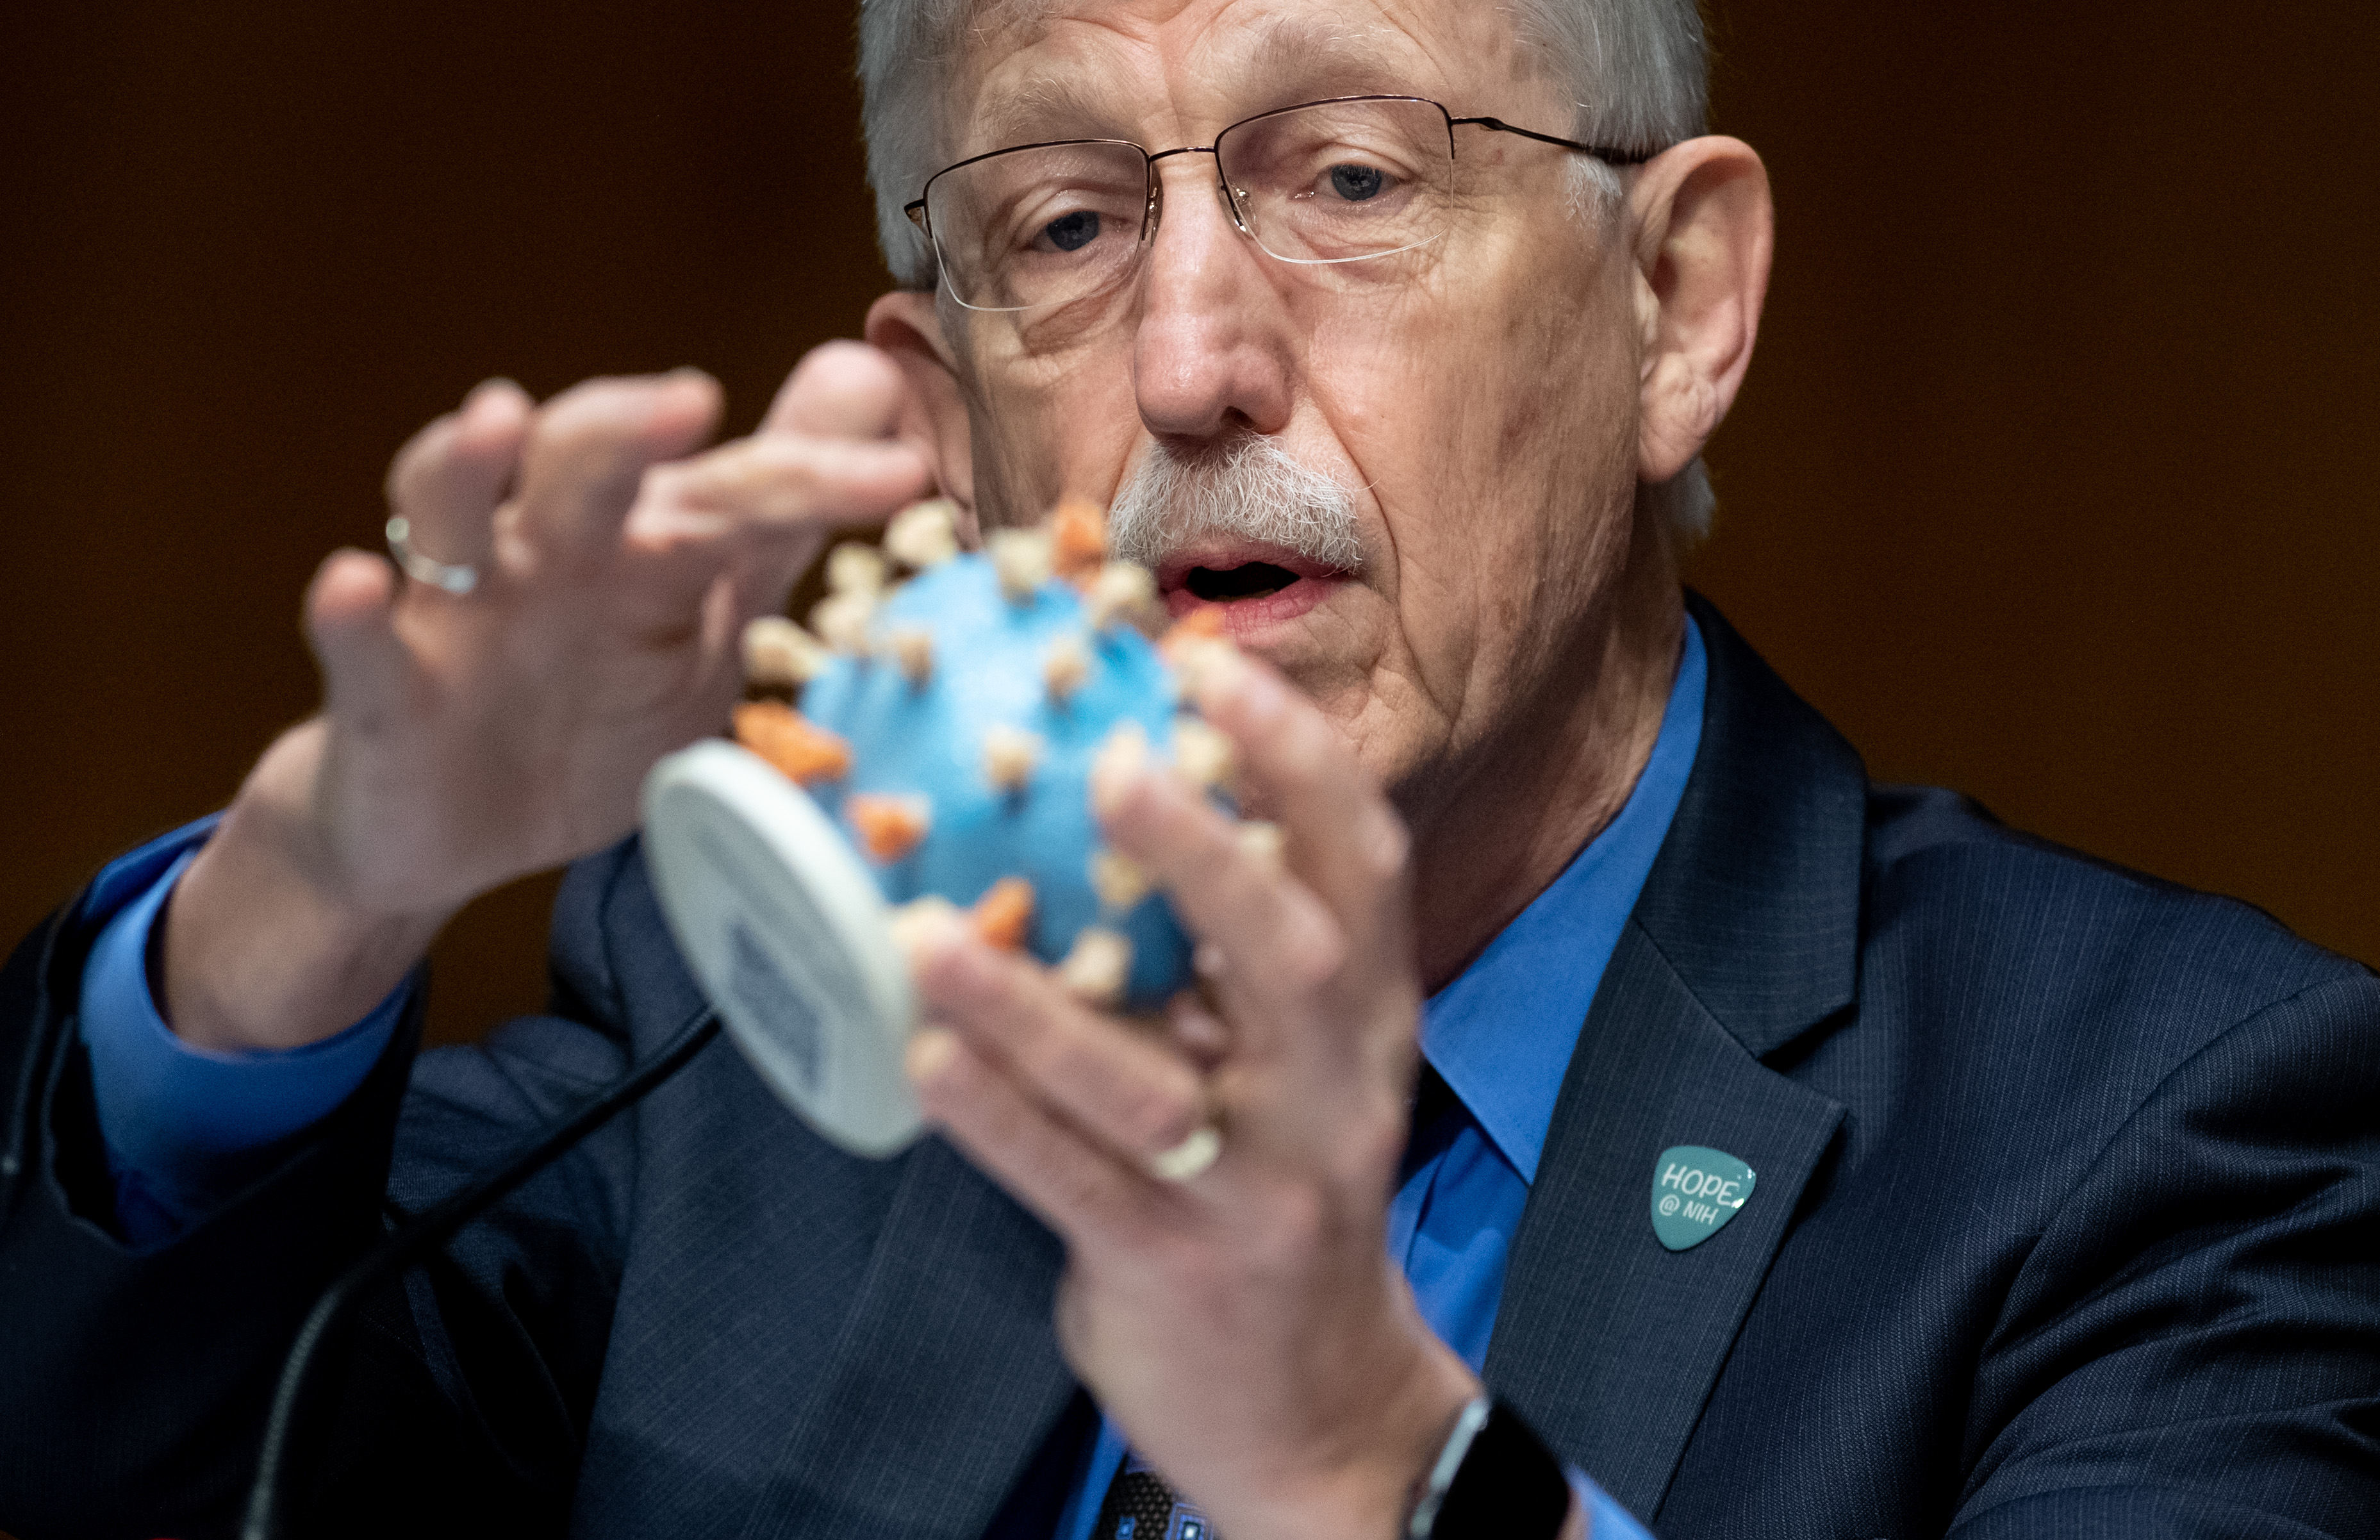 Dr. Francis Collins, director of the National Institutes of Health, holds up a model of coronavirus, during a hearing on the vaccine on July 2, 2020. (Photo: Saul Loeb-Pool/Getty Images)